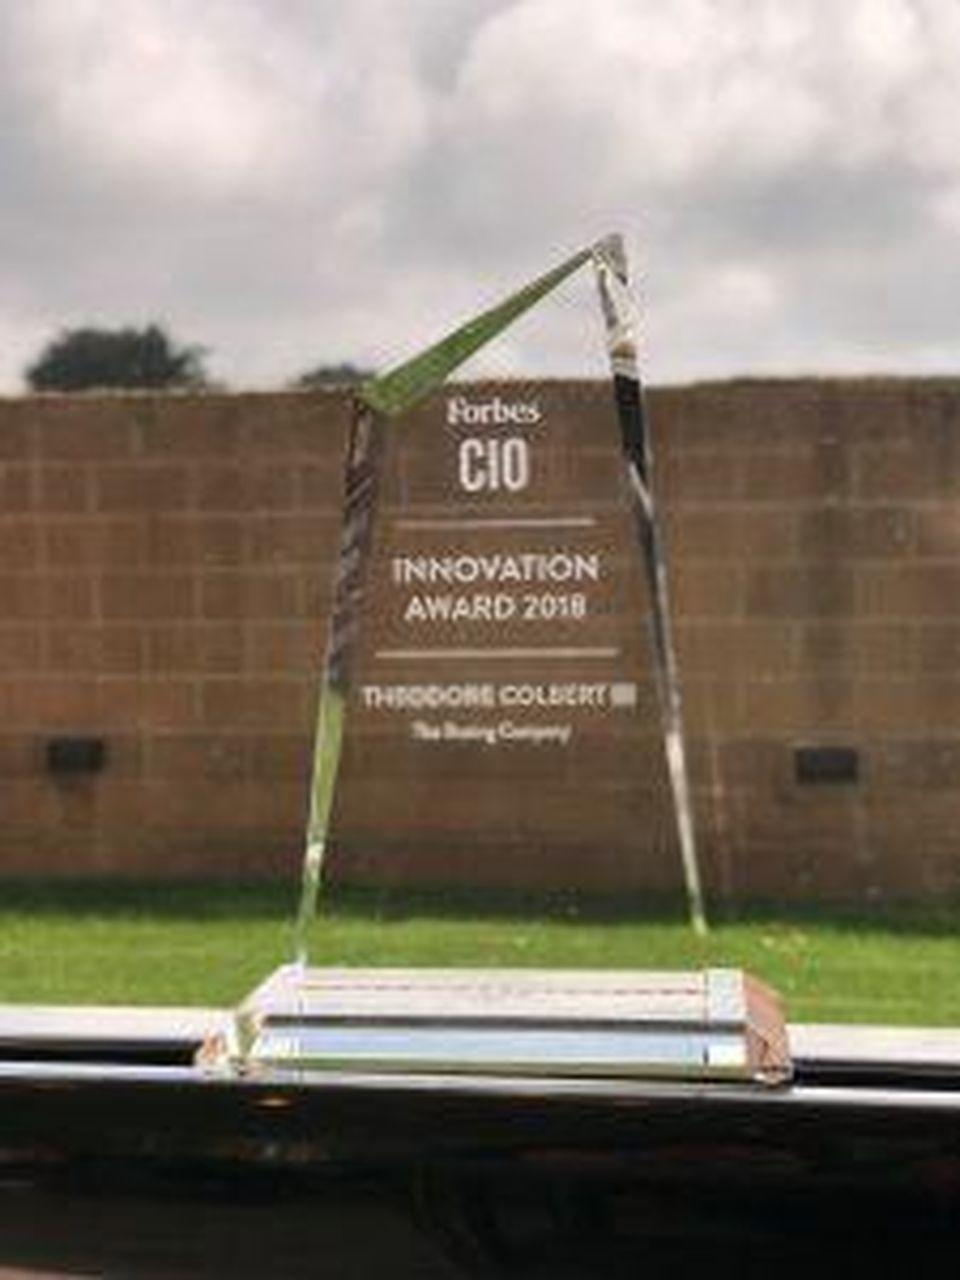 The Forbes CIO Innovation Award is given to CIOs driving revenue based innovation.